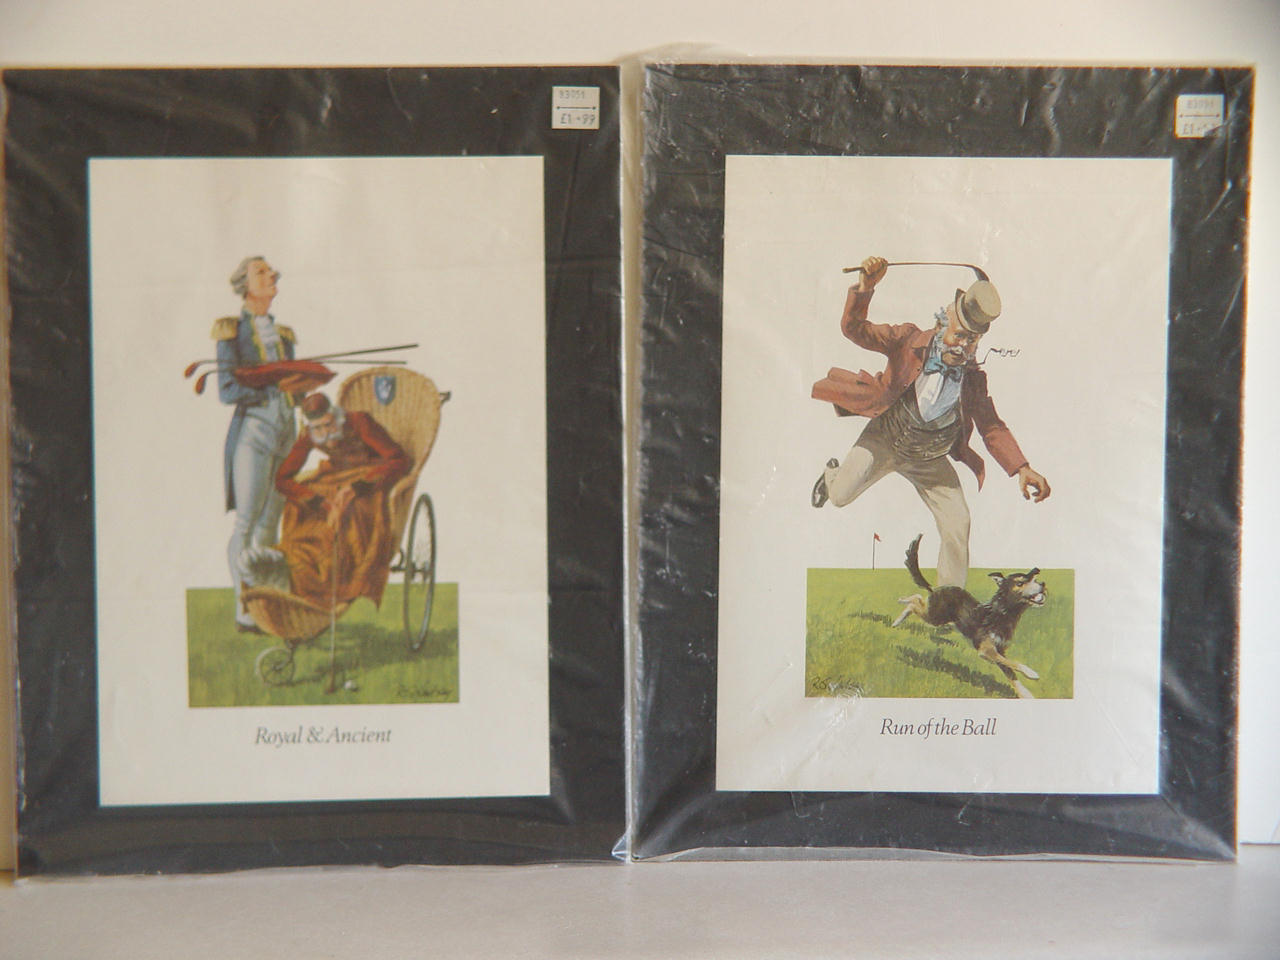 Primary image for  Royal and Ancient Scottish Golf Prints from Innes and Crom